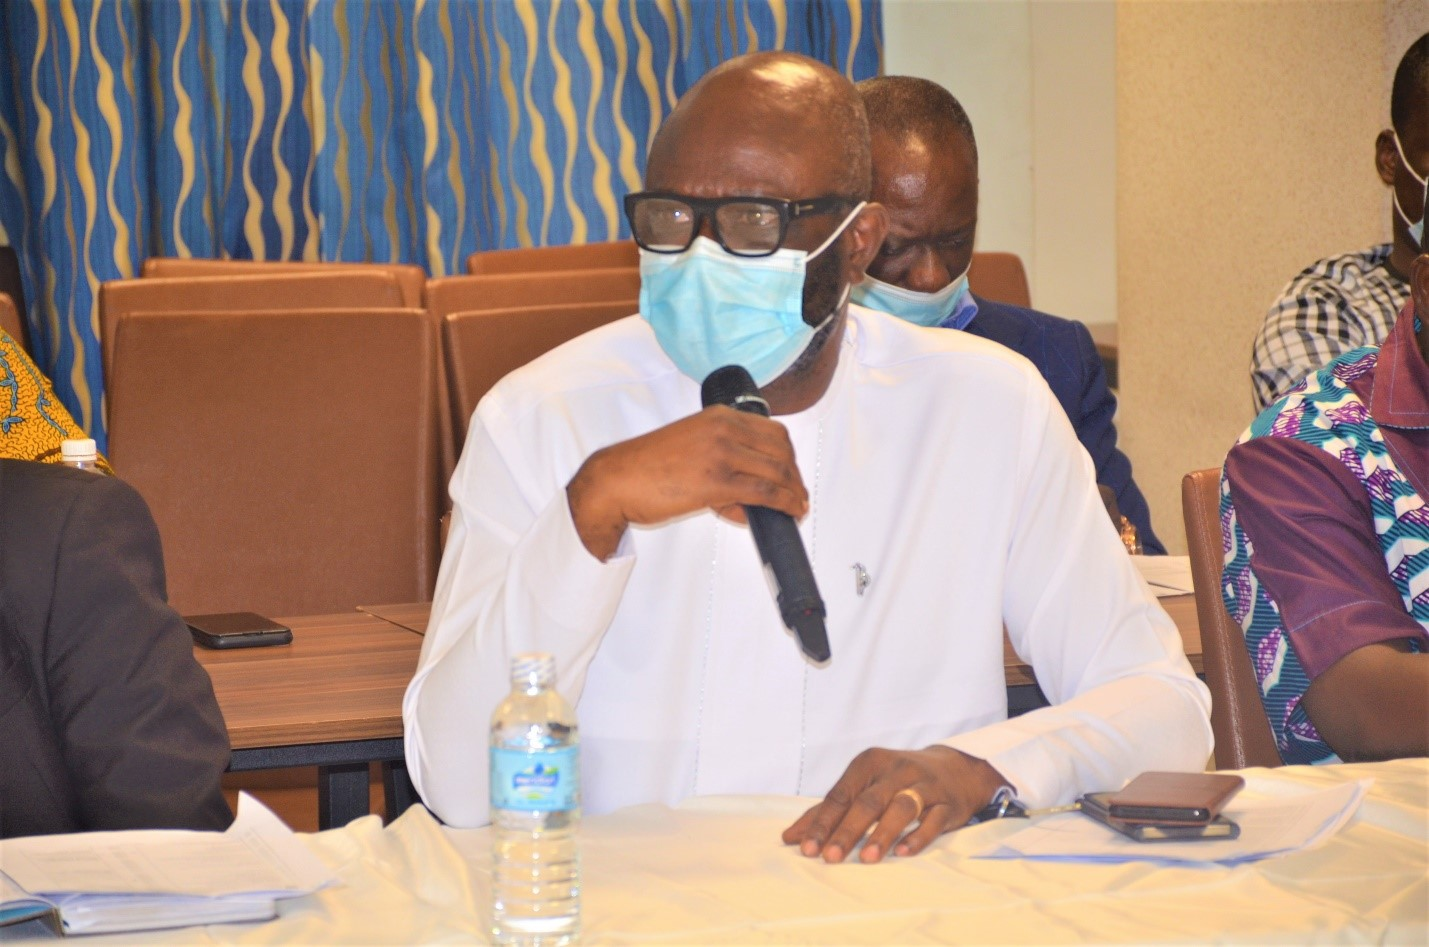 Flexible insurance policies would attract importers - GUTA ...